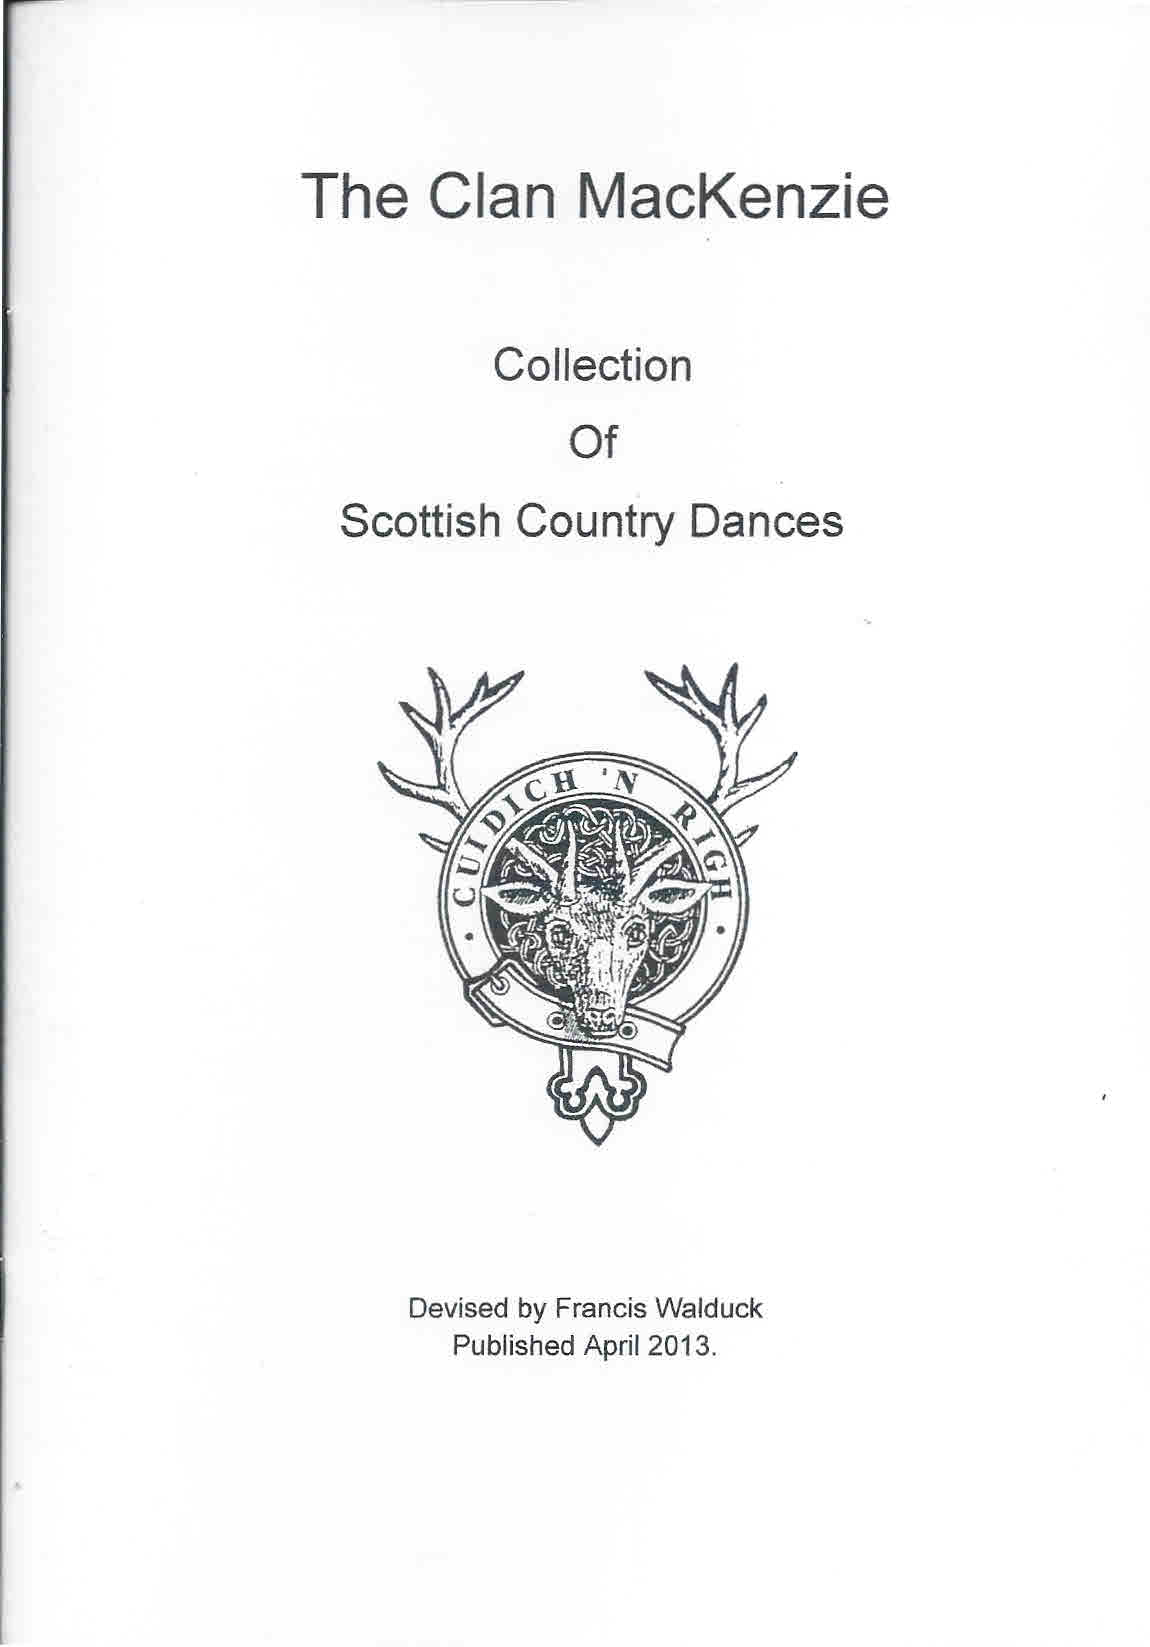 The Clan MacKenzie Collection of SCD